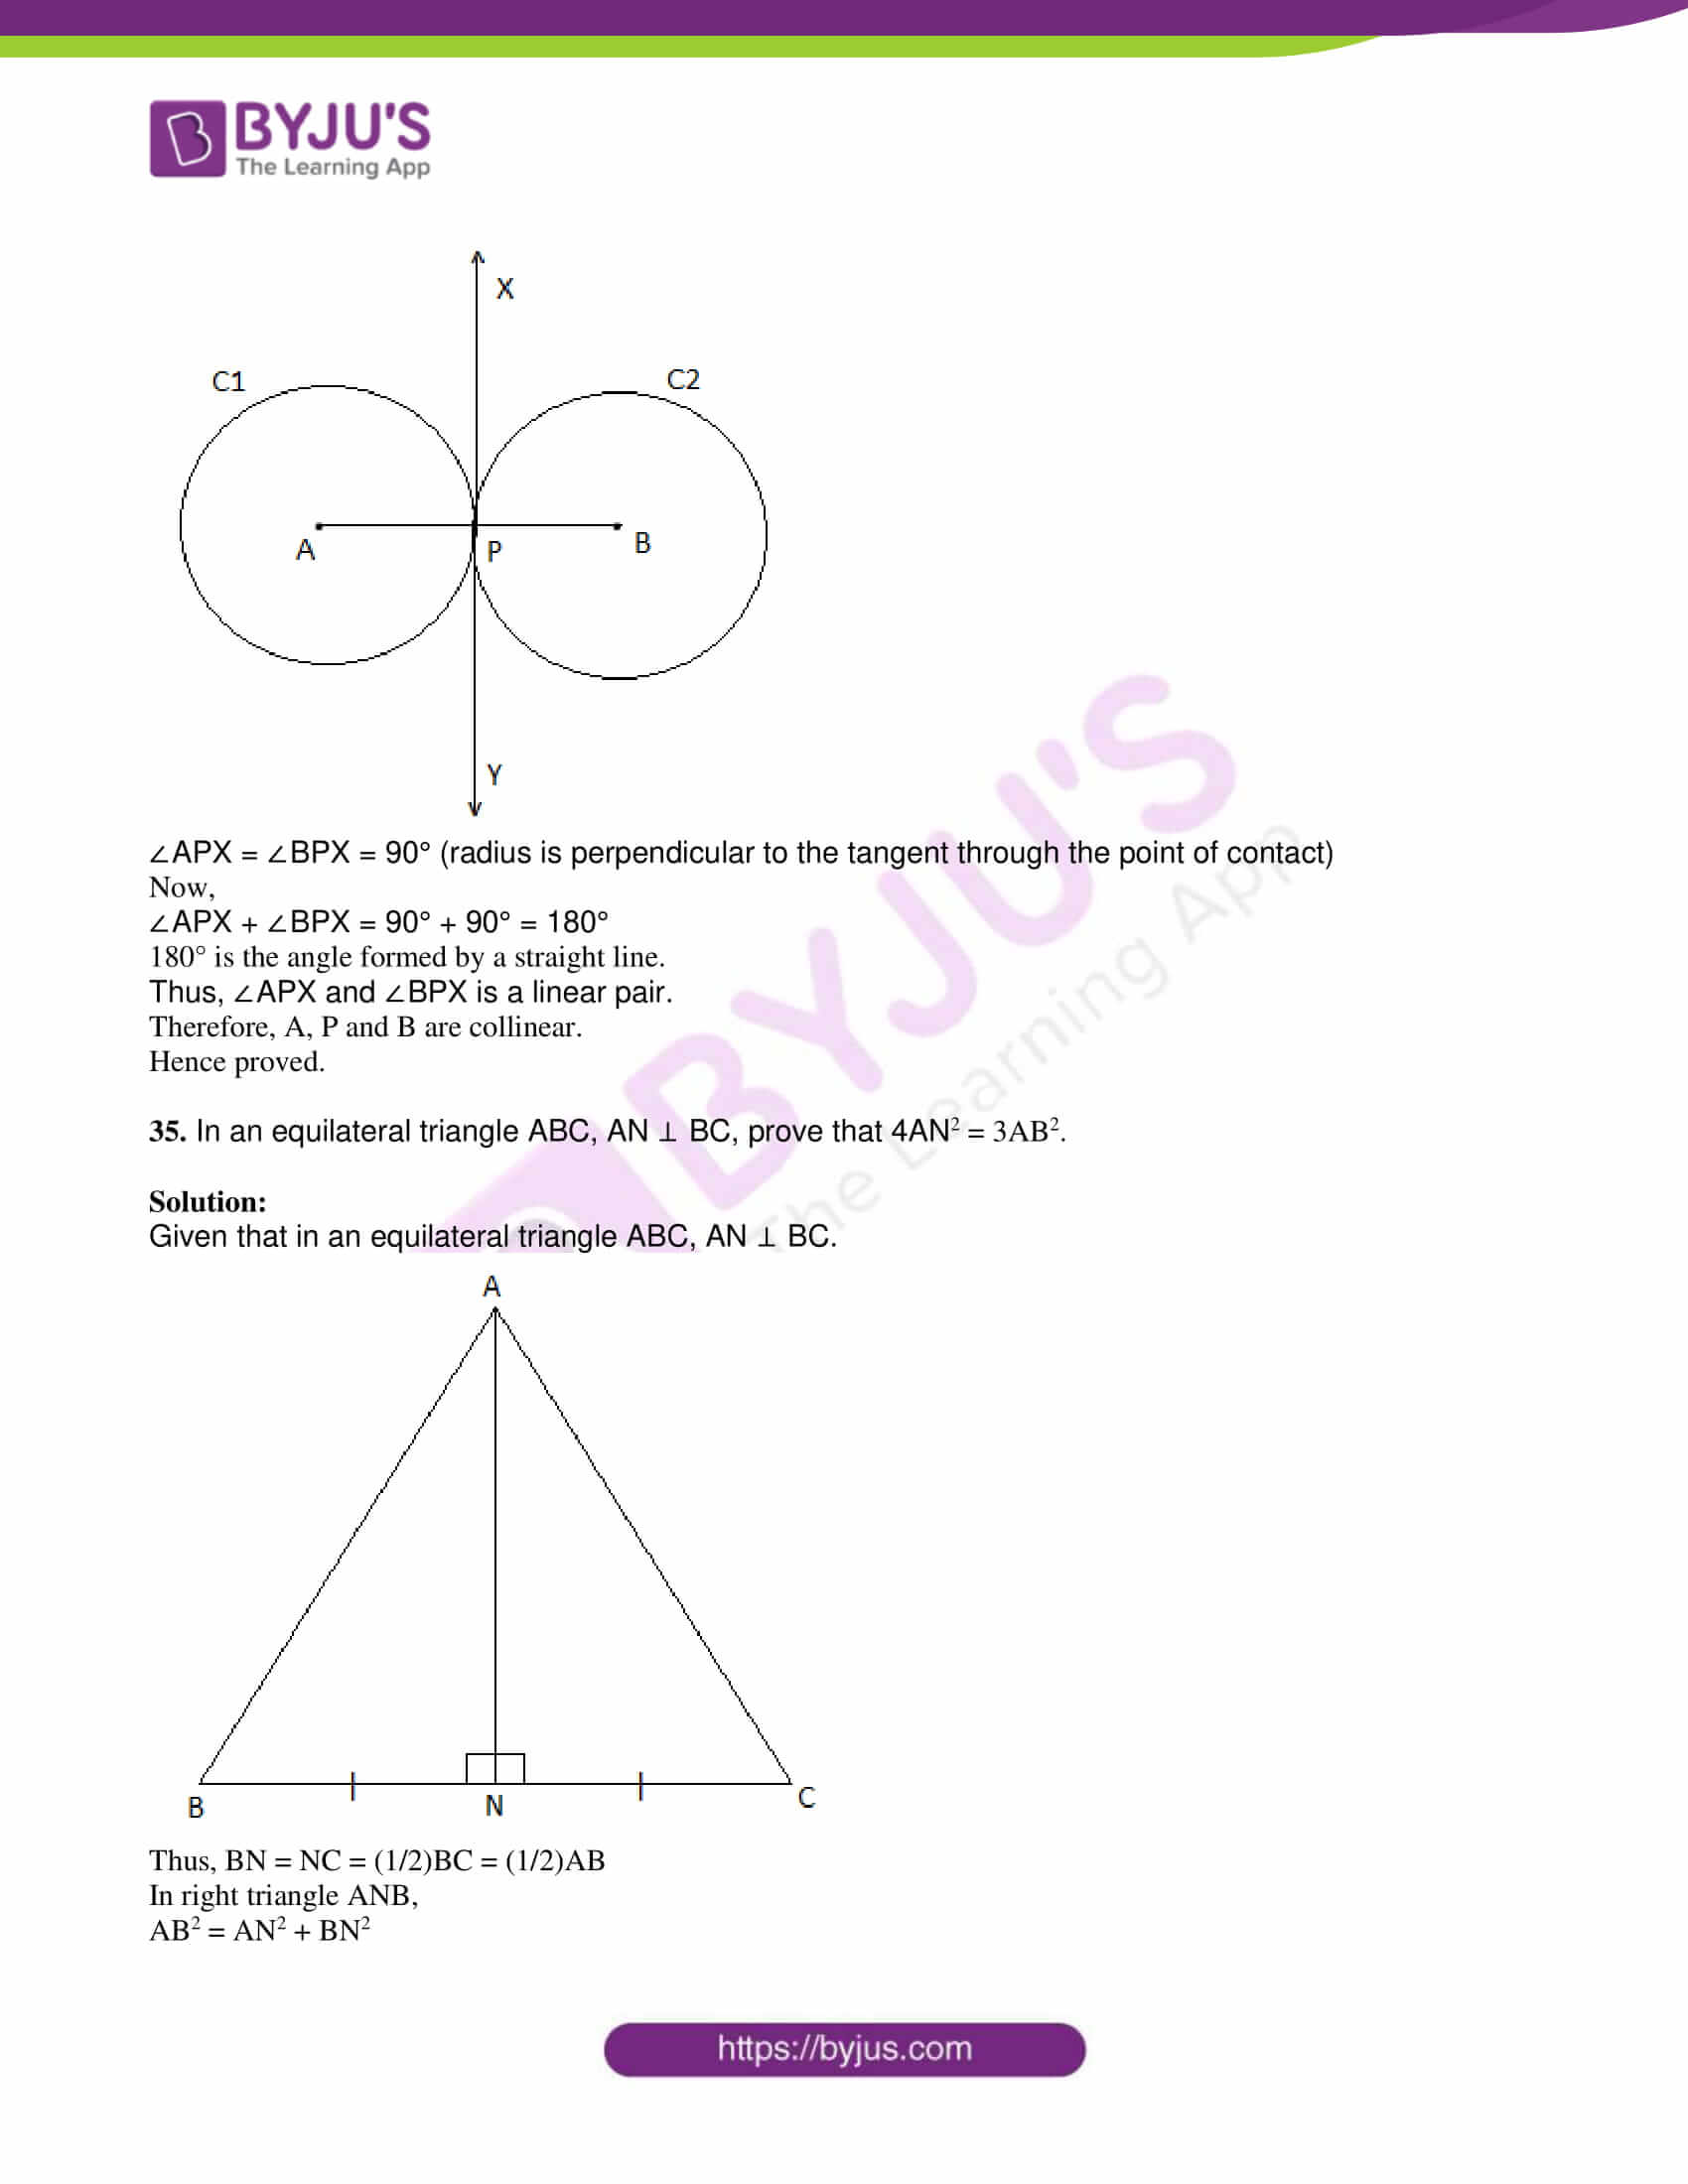 kseeb class 10 maths question paper solution 2017 15